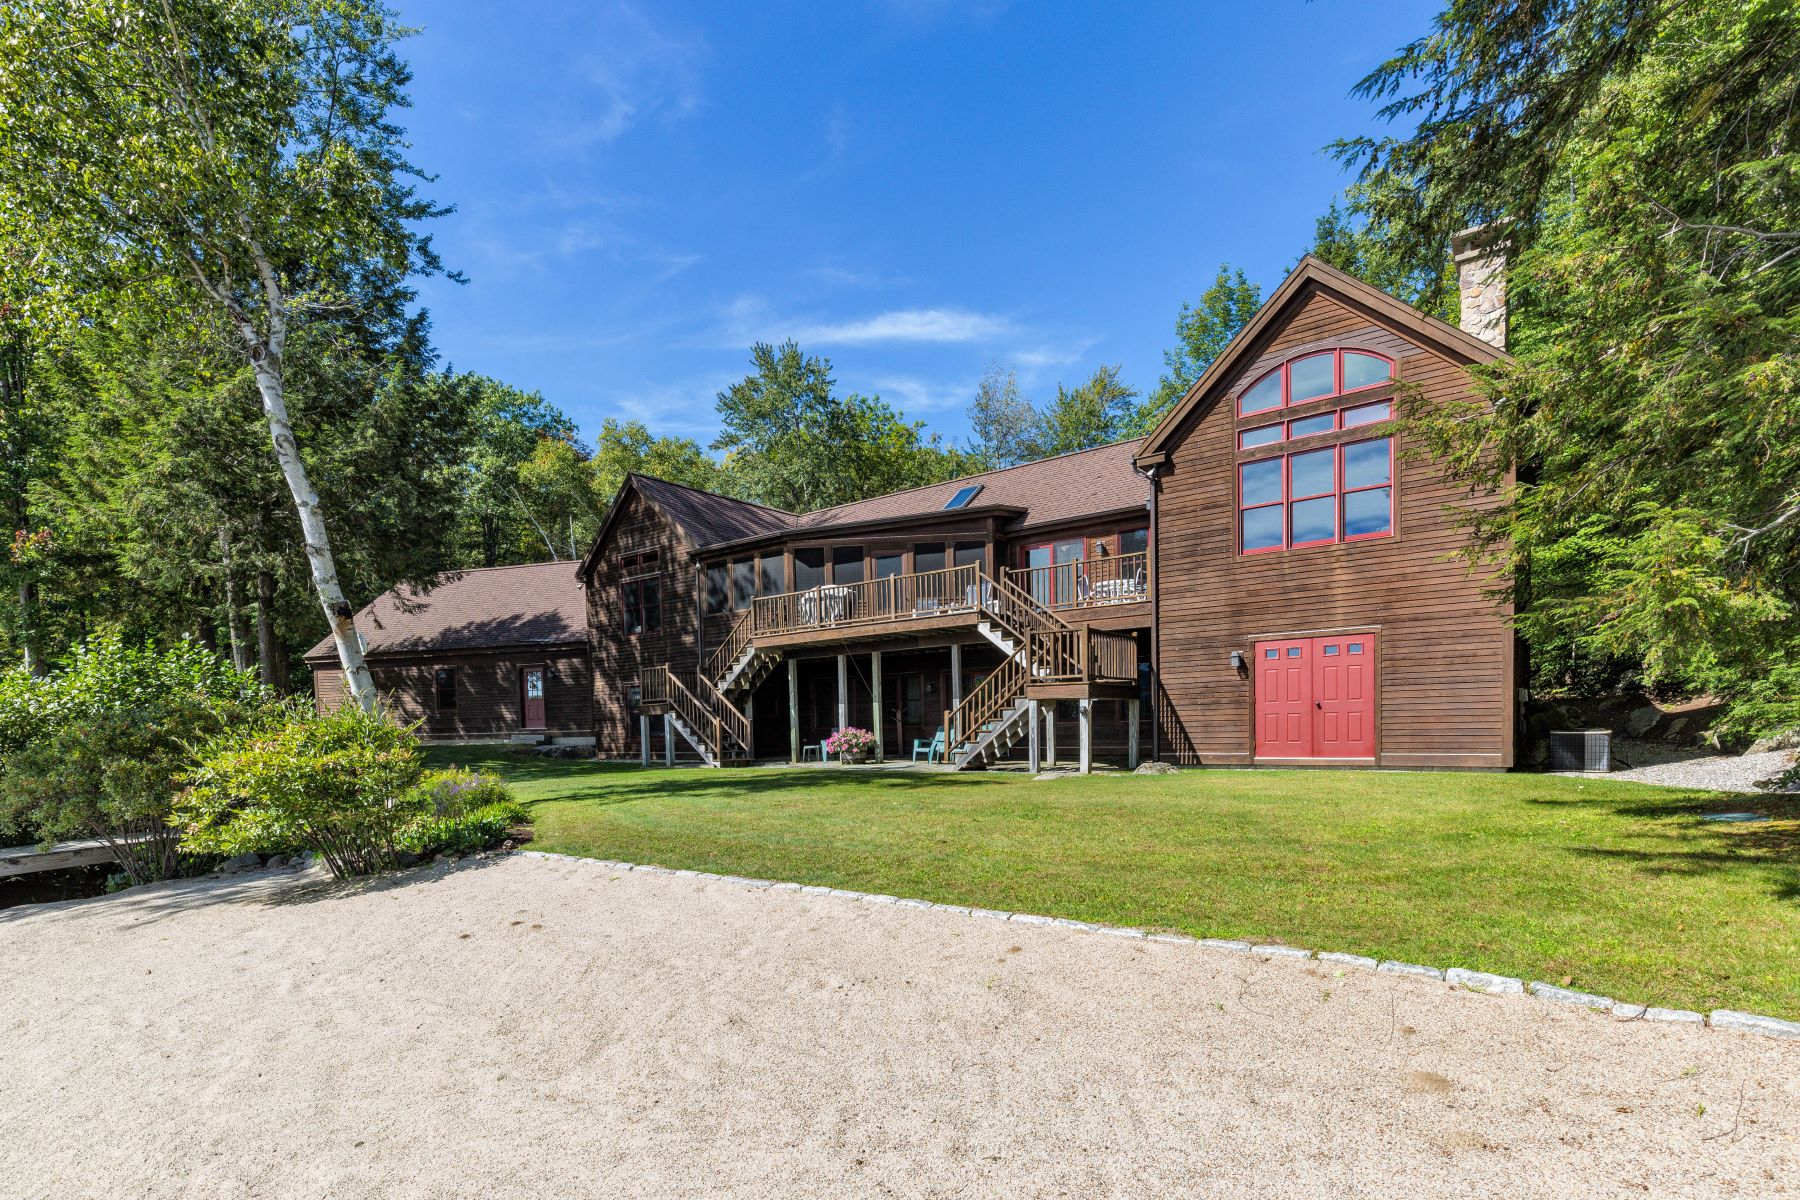 Single Family Homes for Sale at 8 Lovejoy Lane Sunapee, New Hampshire 03782 United States